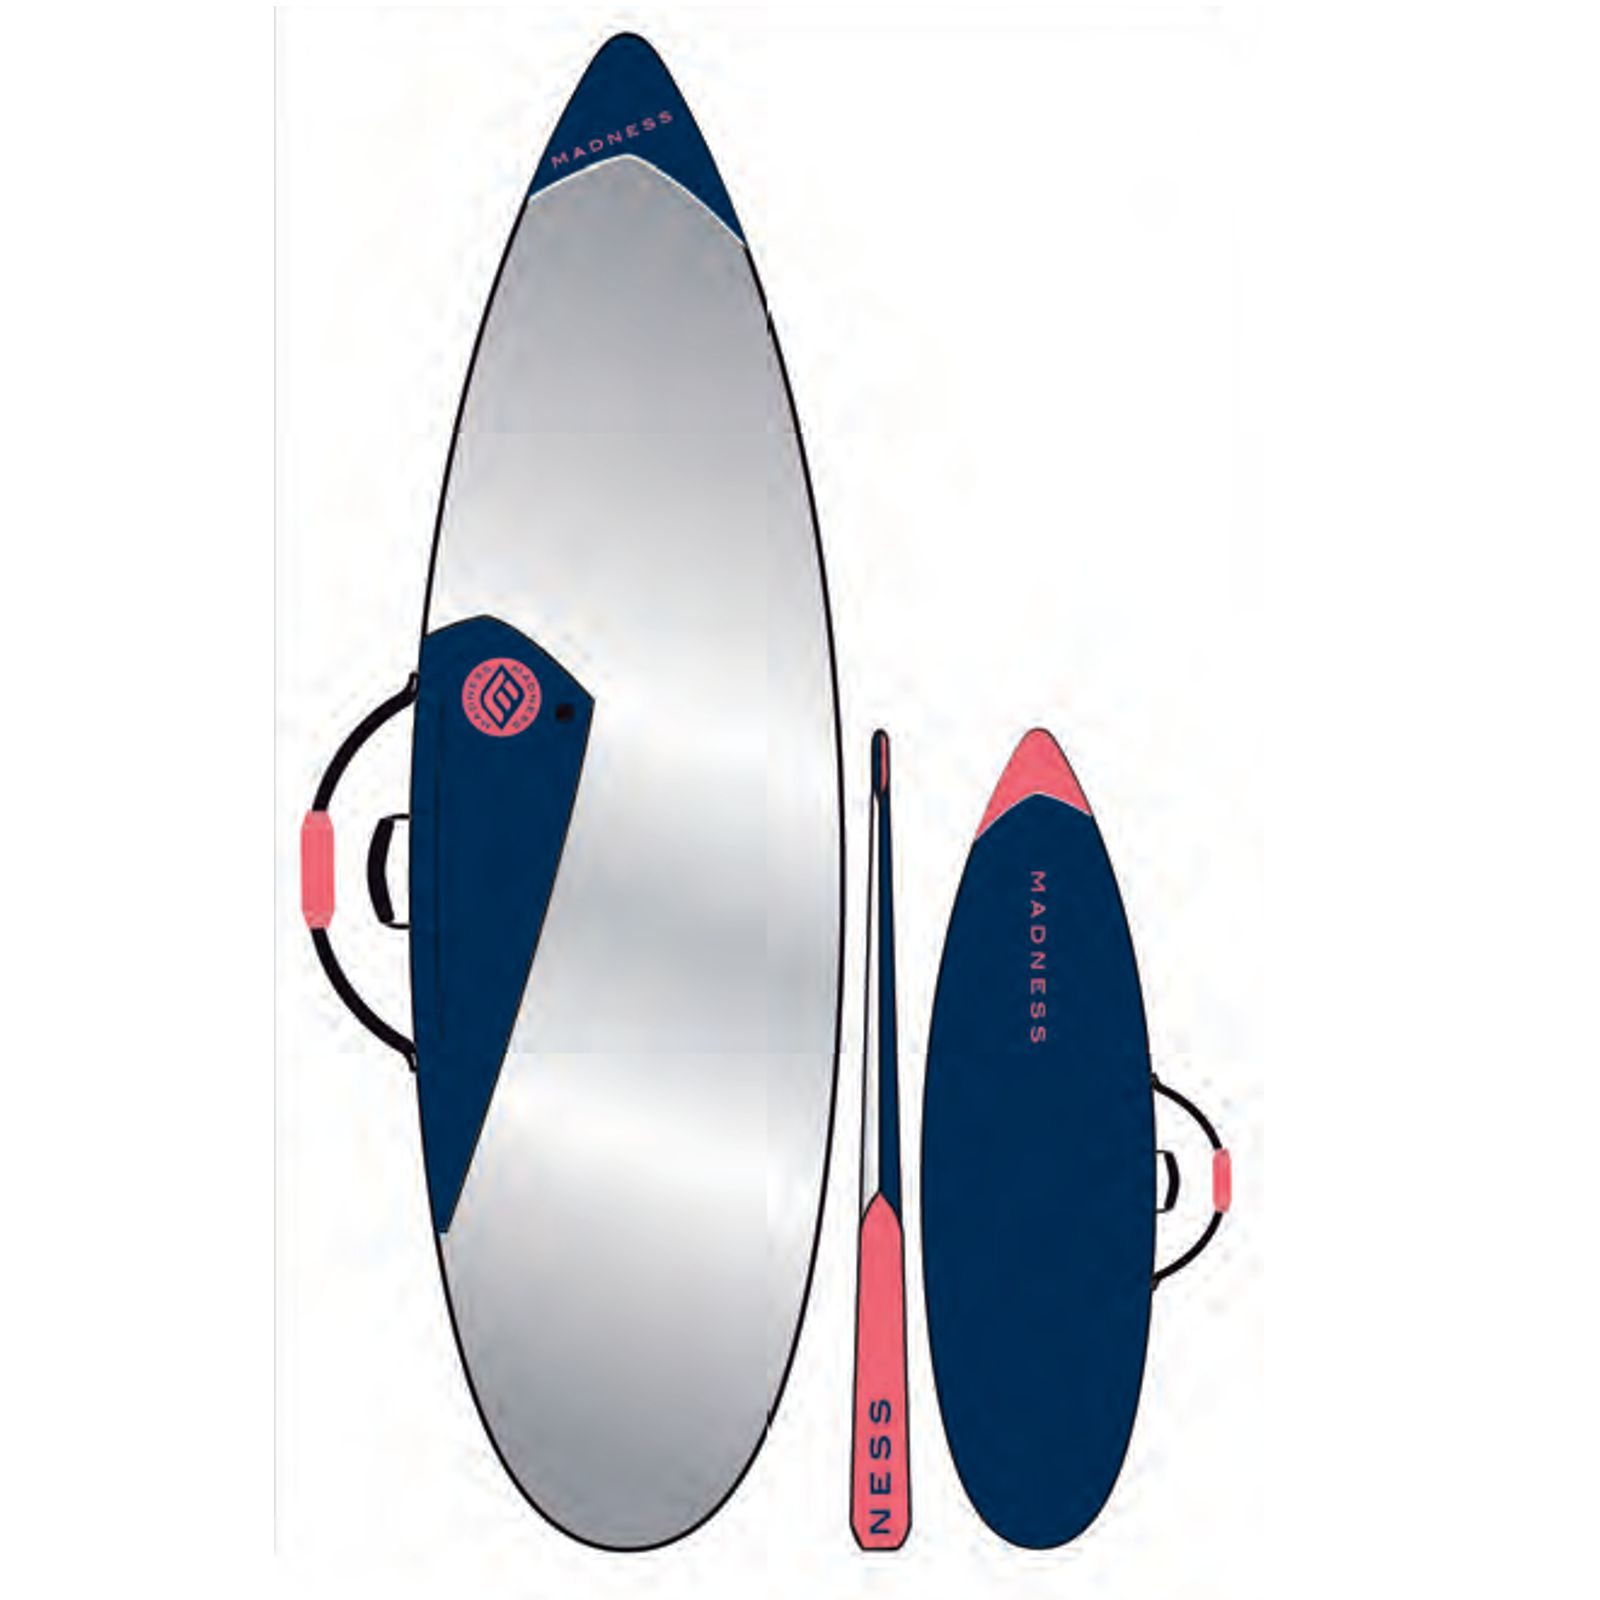 MADNESS Boardbag PE 6.4 Shortboard Blau Rot